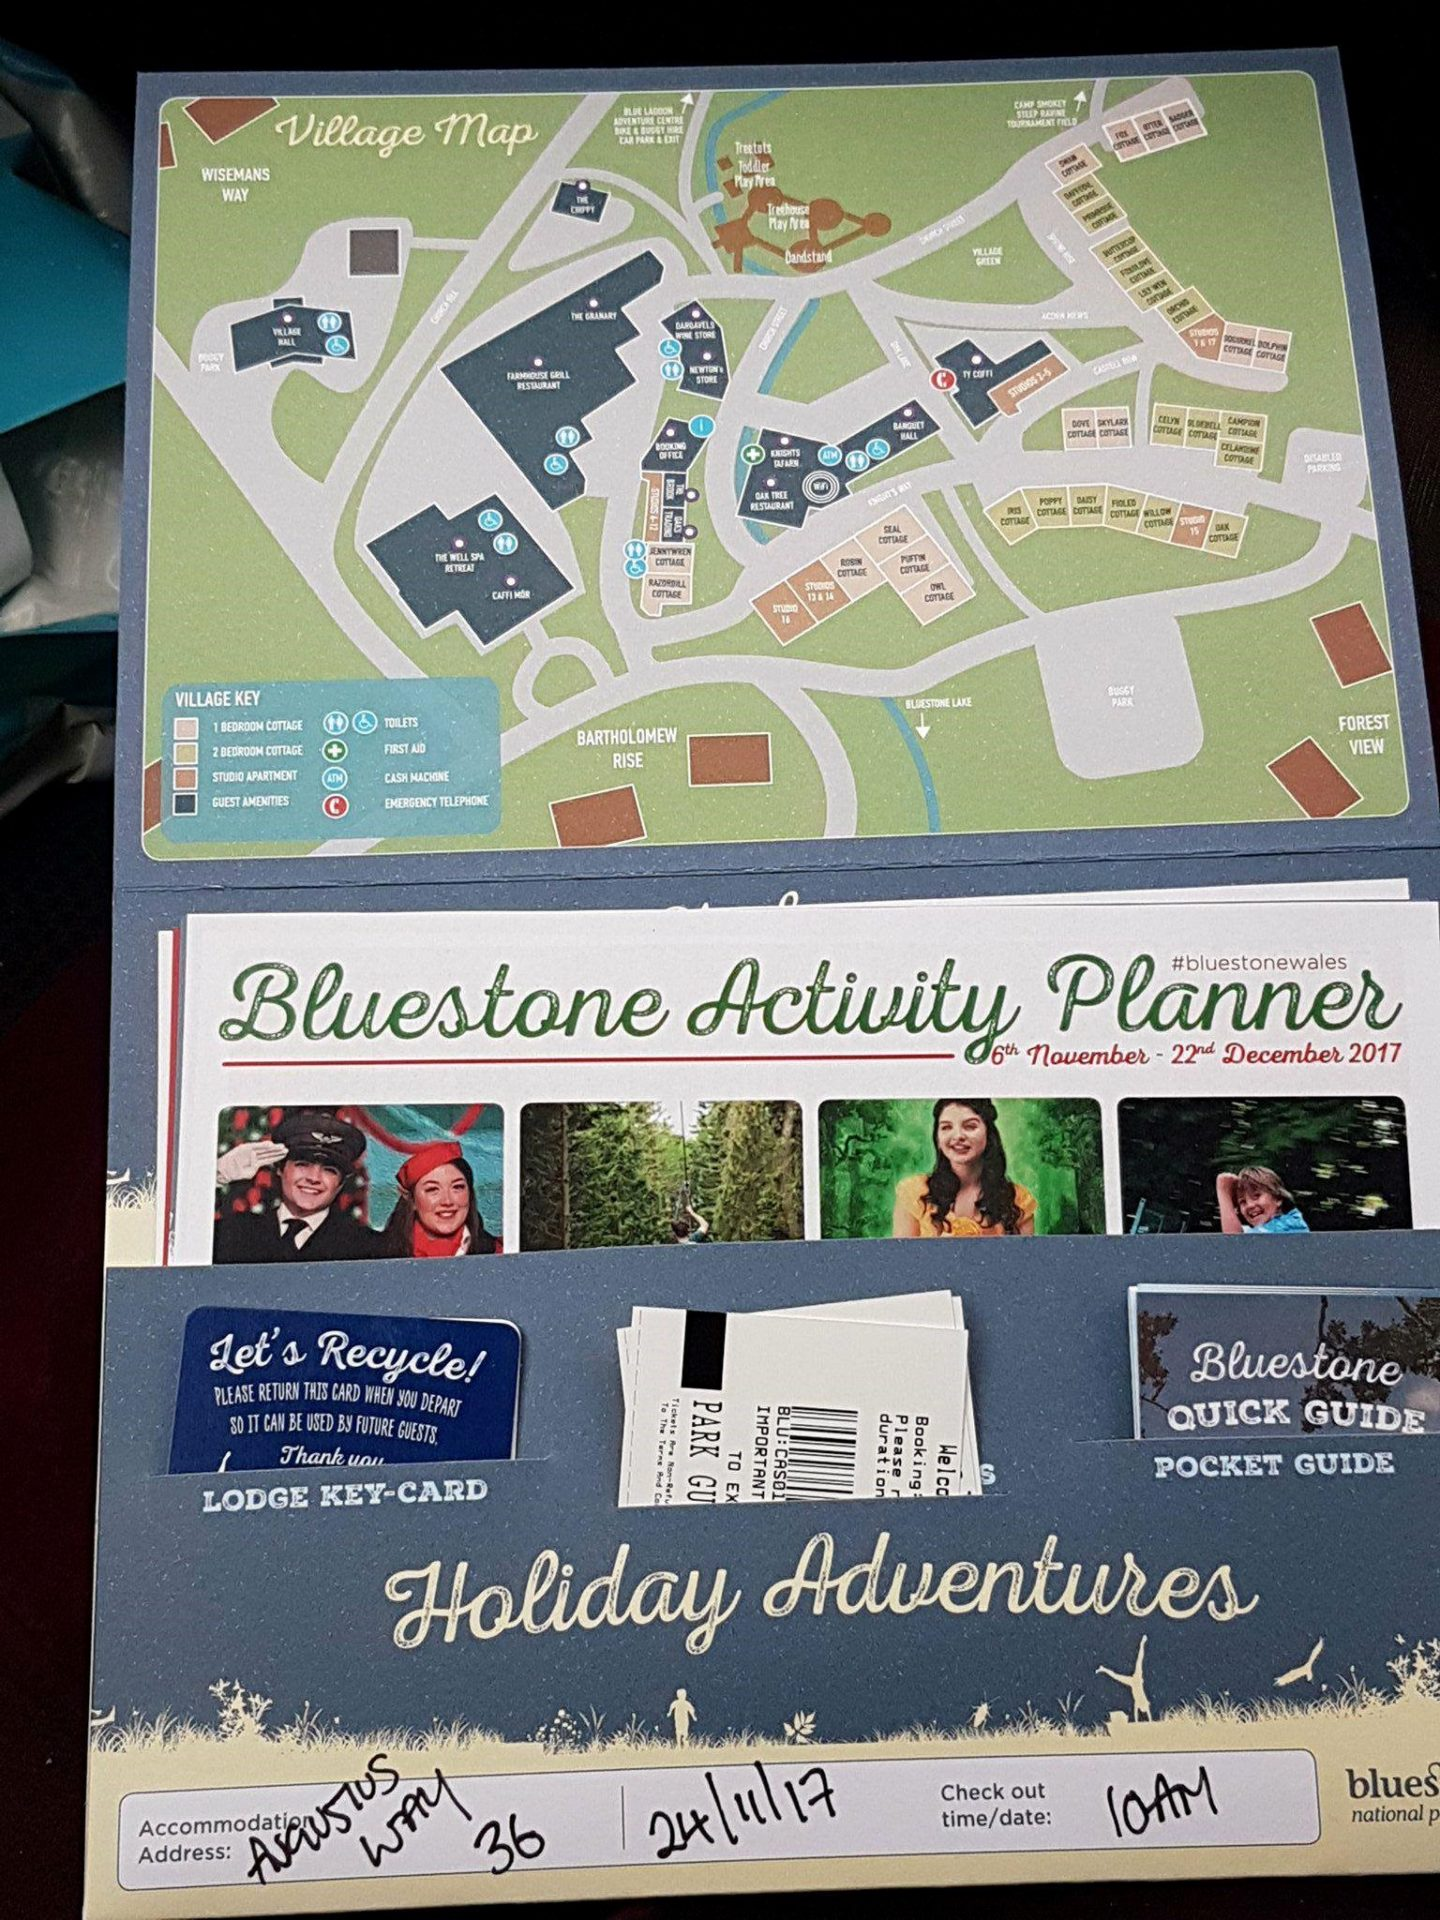 Bluestone welcome pack